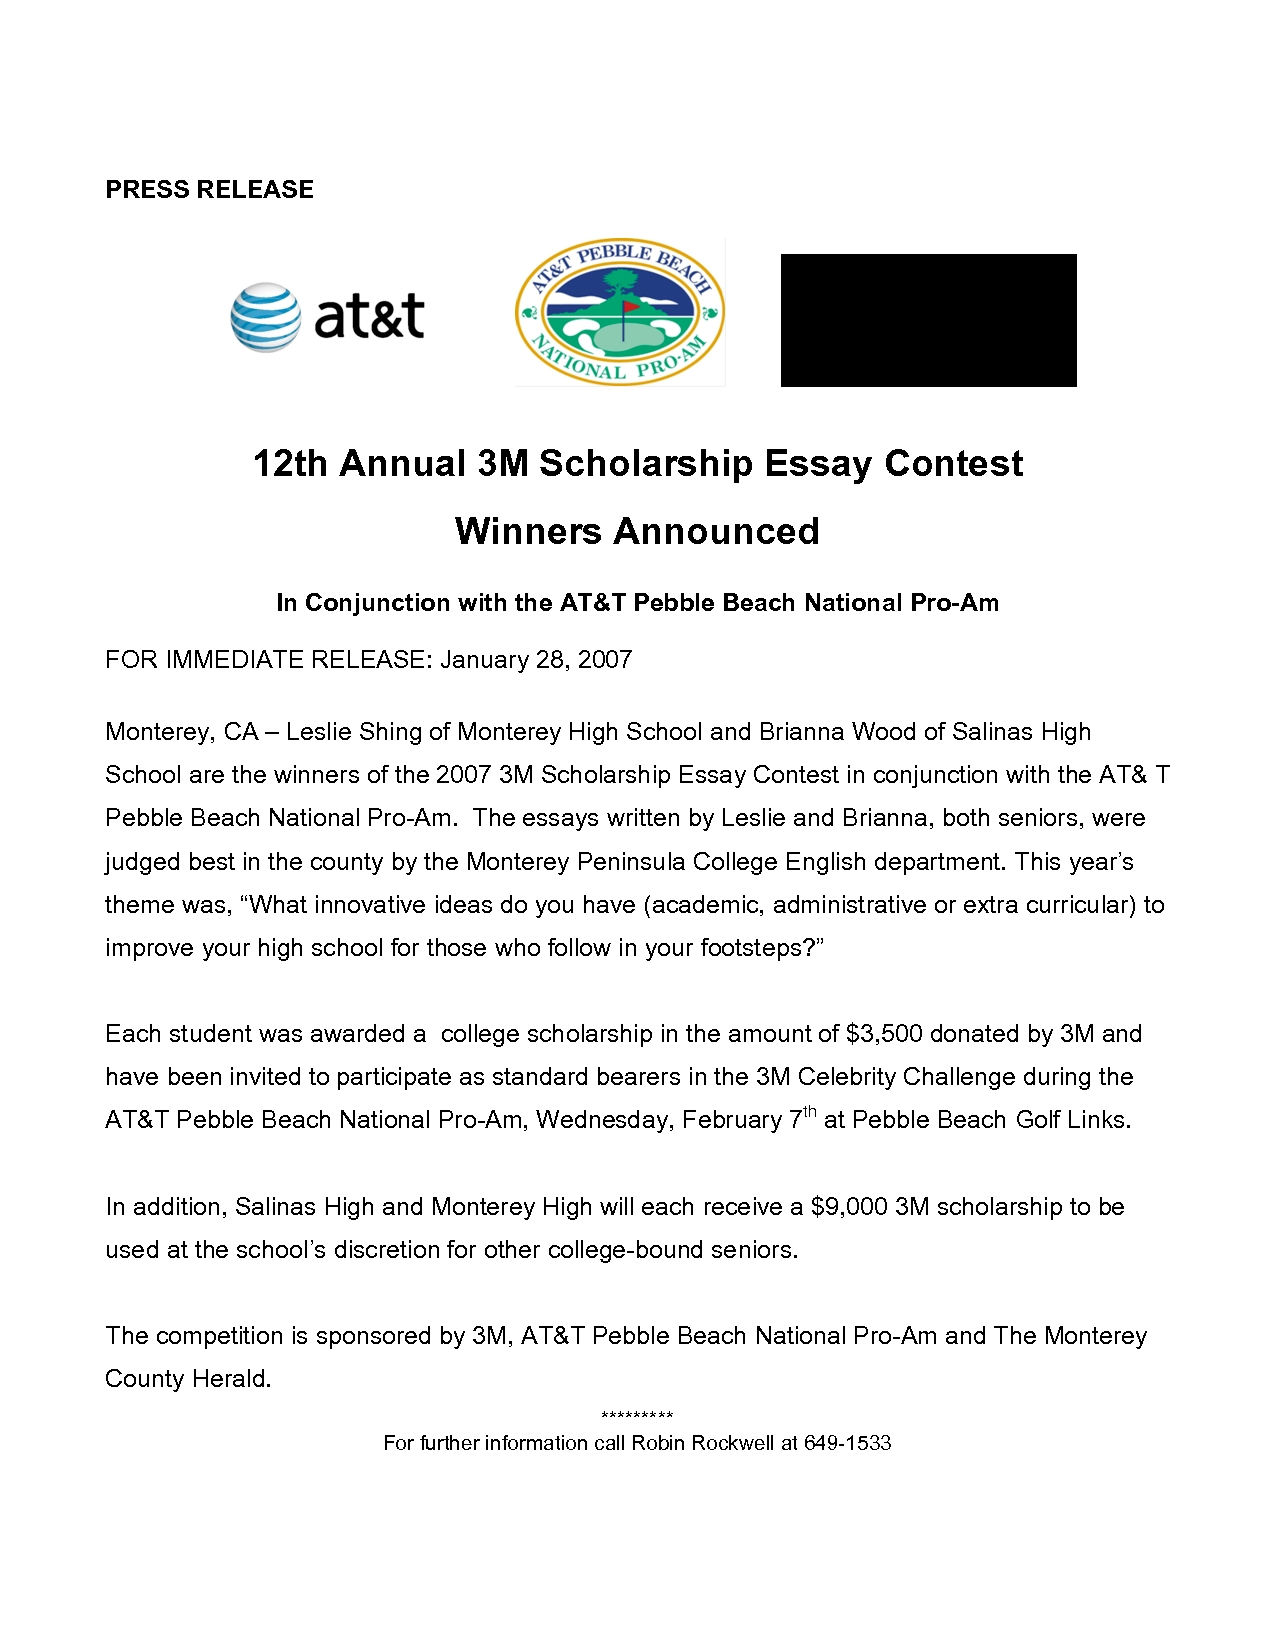 004 Scholarship Essay Contests Example High School Examples Printables Corner Contest Scholarships For College Students Application He Stupendous Middle Seniors Full